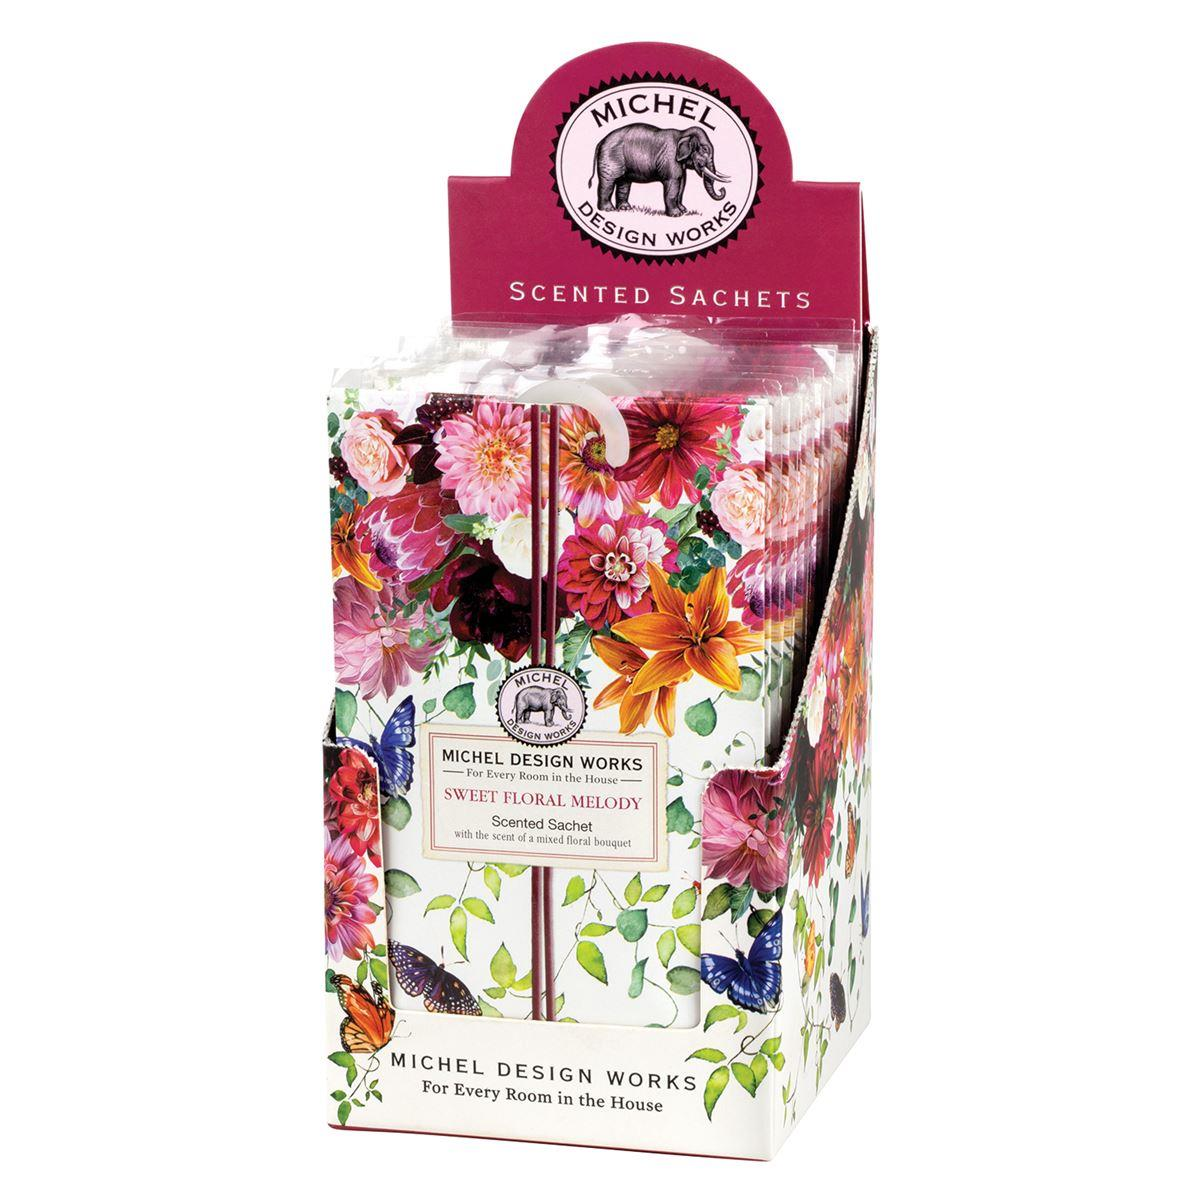 Michel Design Works Scented Sachet Sweet Floral Melody